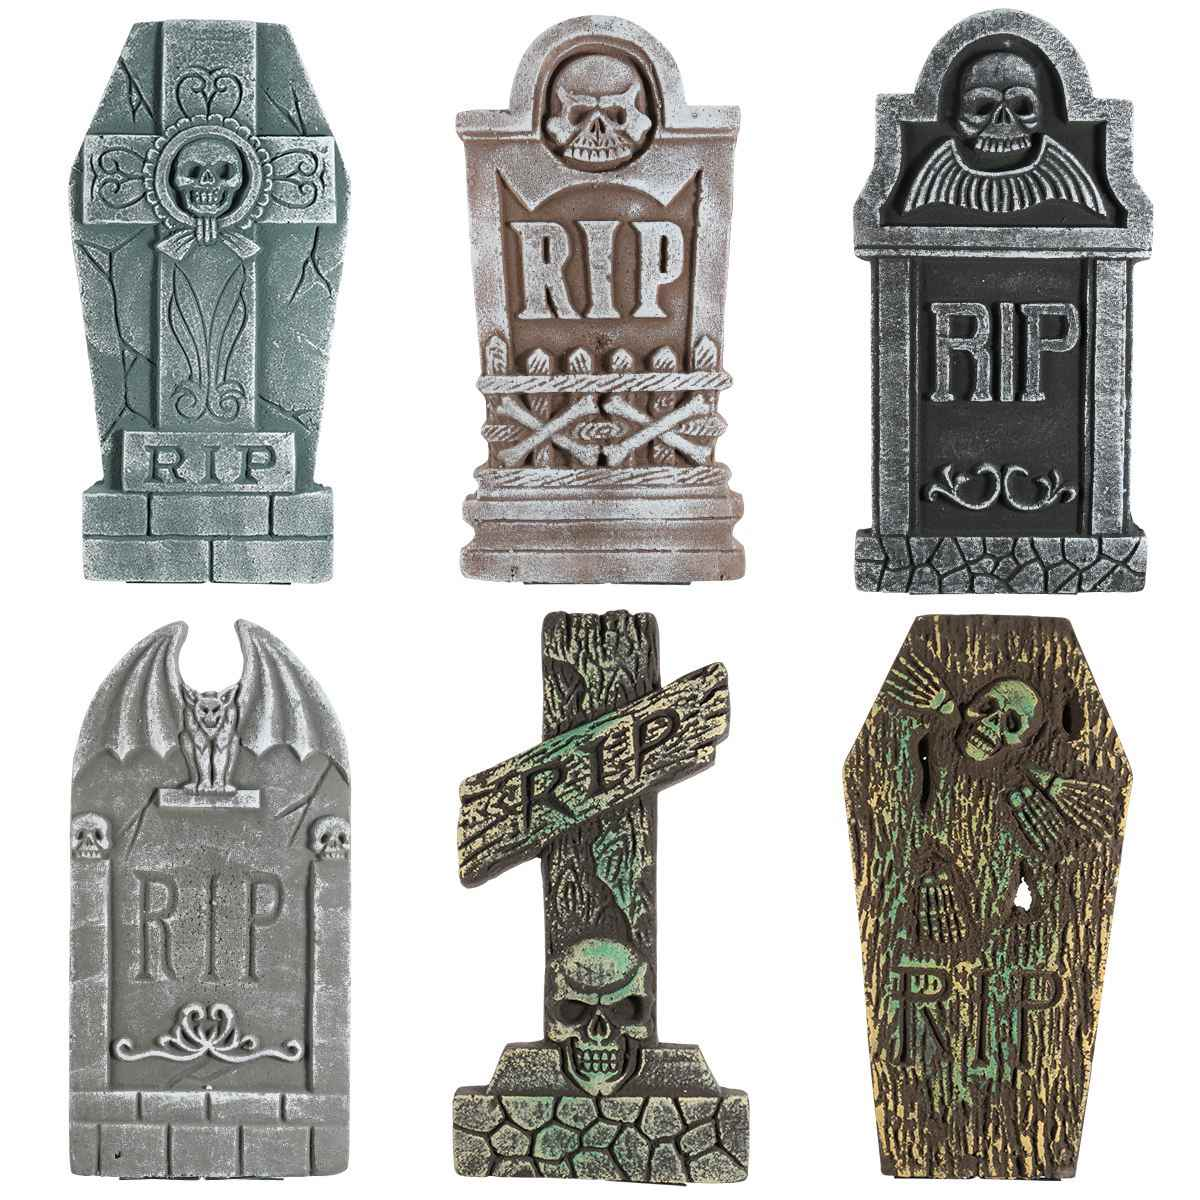 UNOMOR 6PCS Halloween Tombstone Decorations Haunted House Creative Foam Props Decoration Party Decor for Porch Yard Front Door